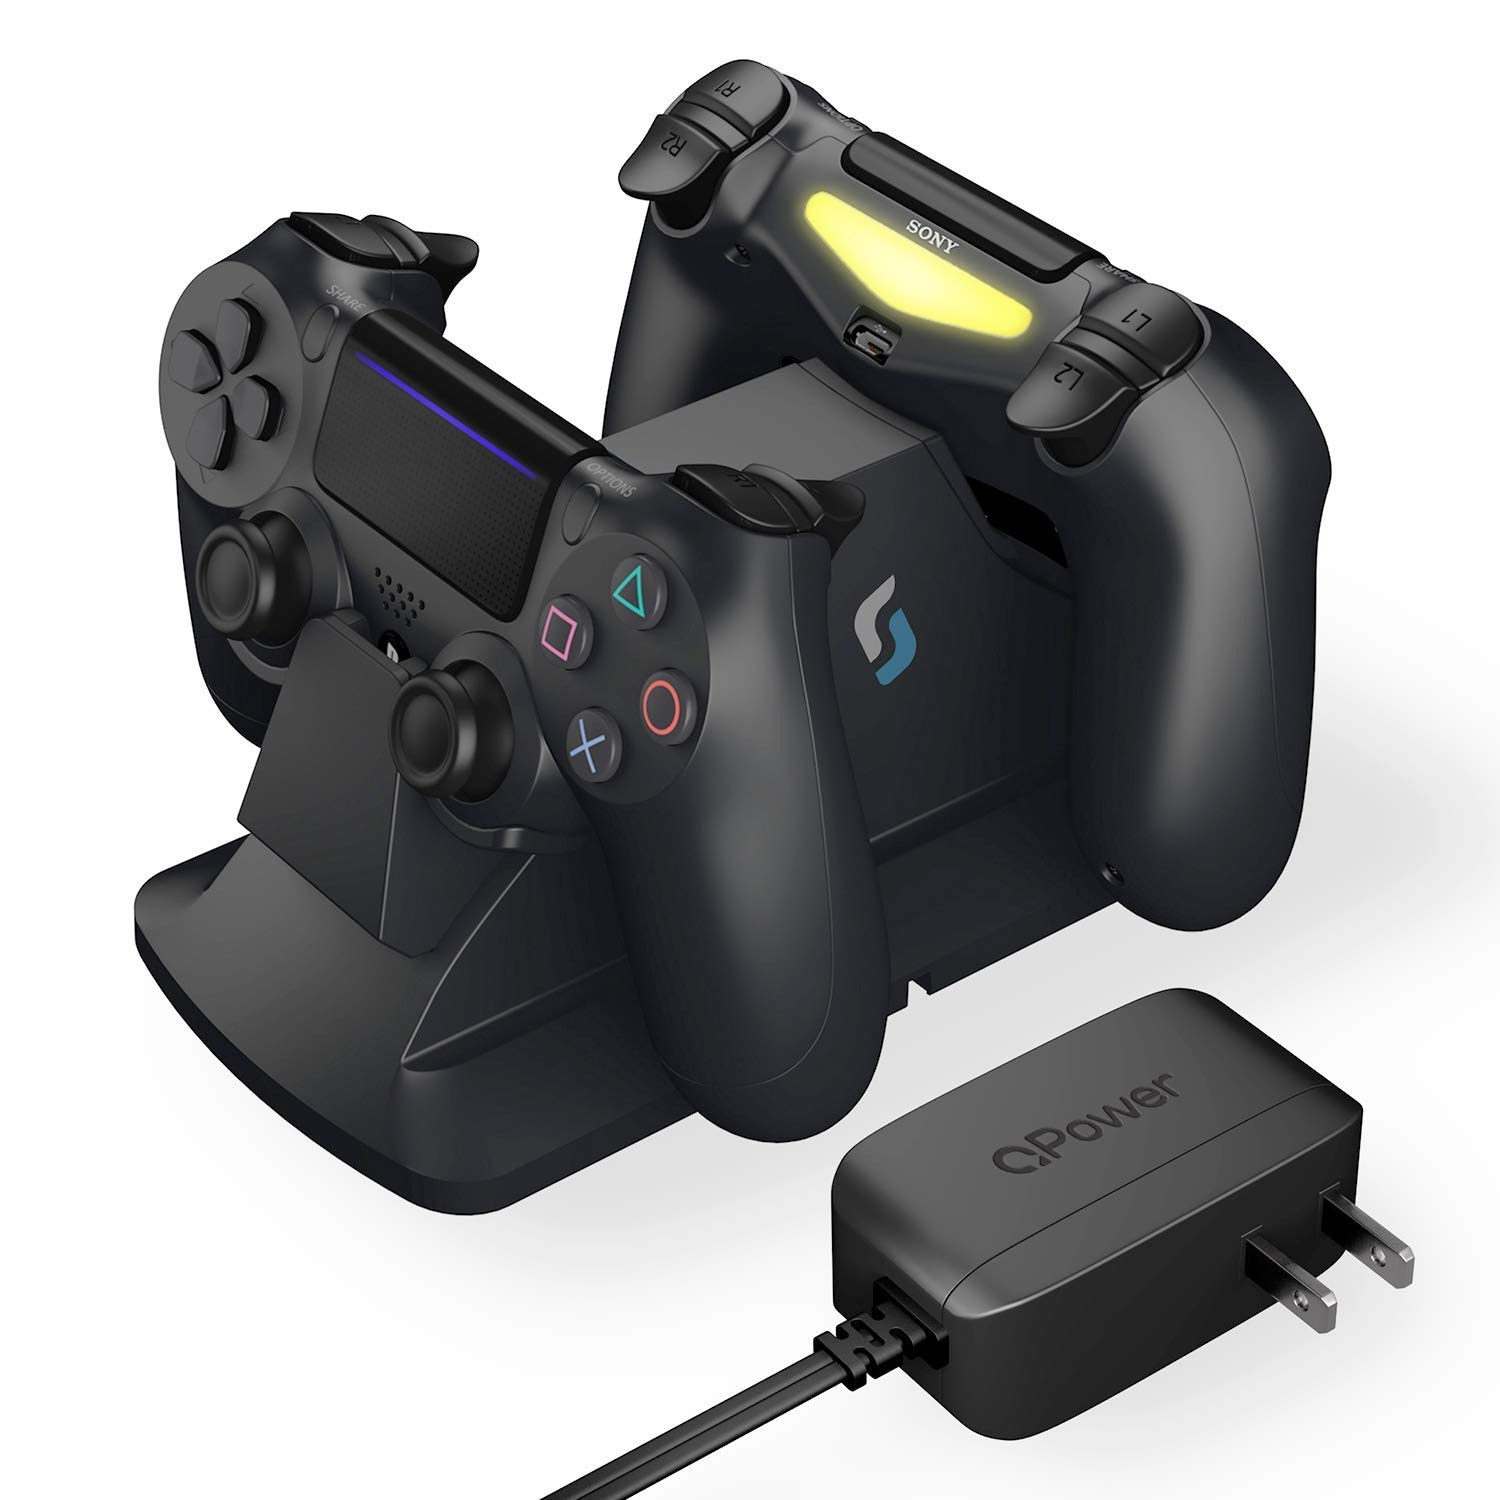 Sliq Gaming PlayStation 4 Controller Charger Station with QPower AC Adapter